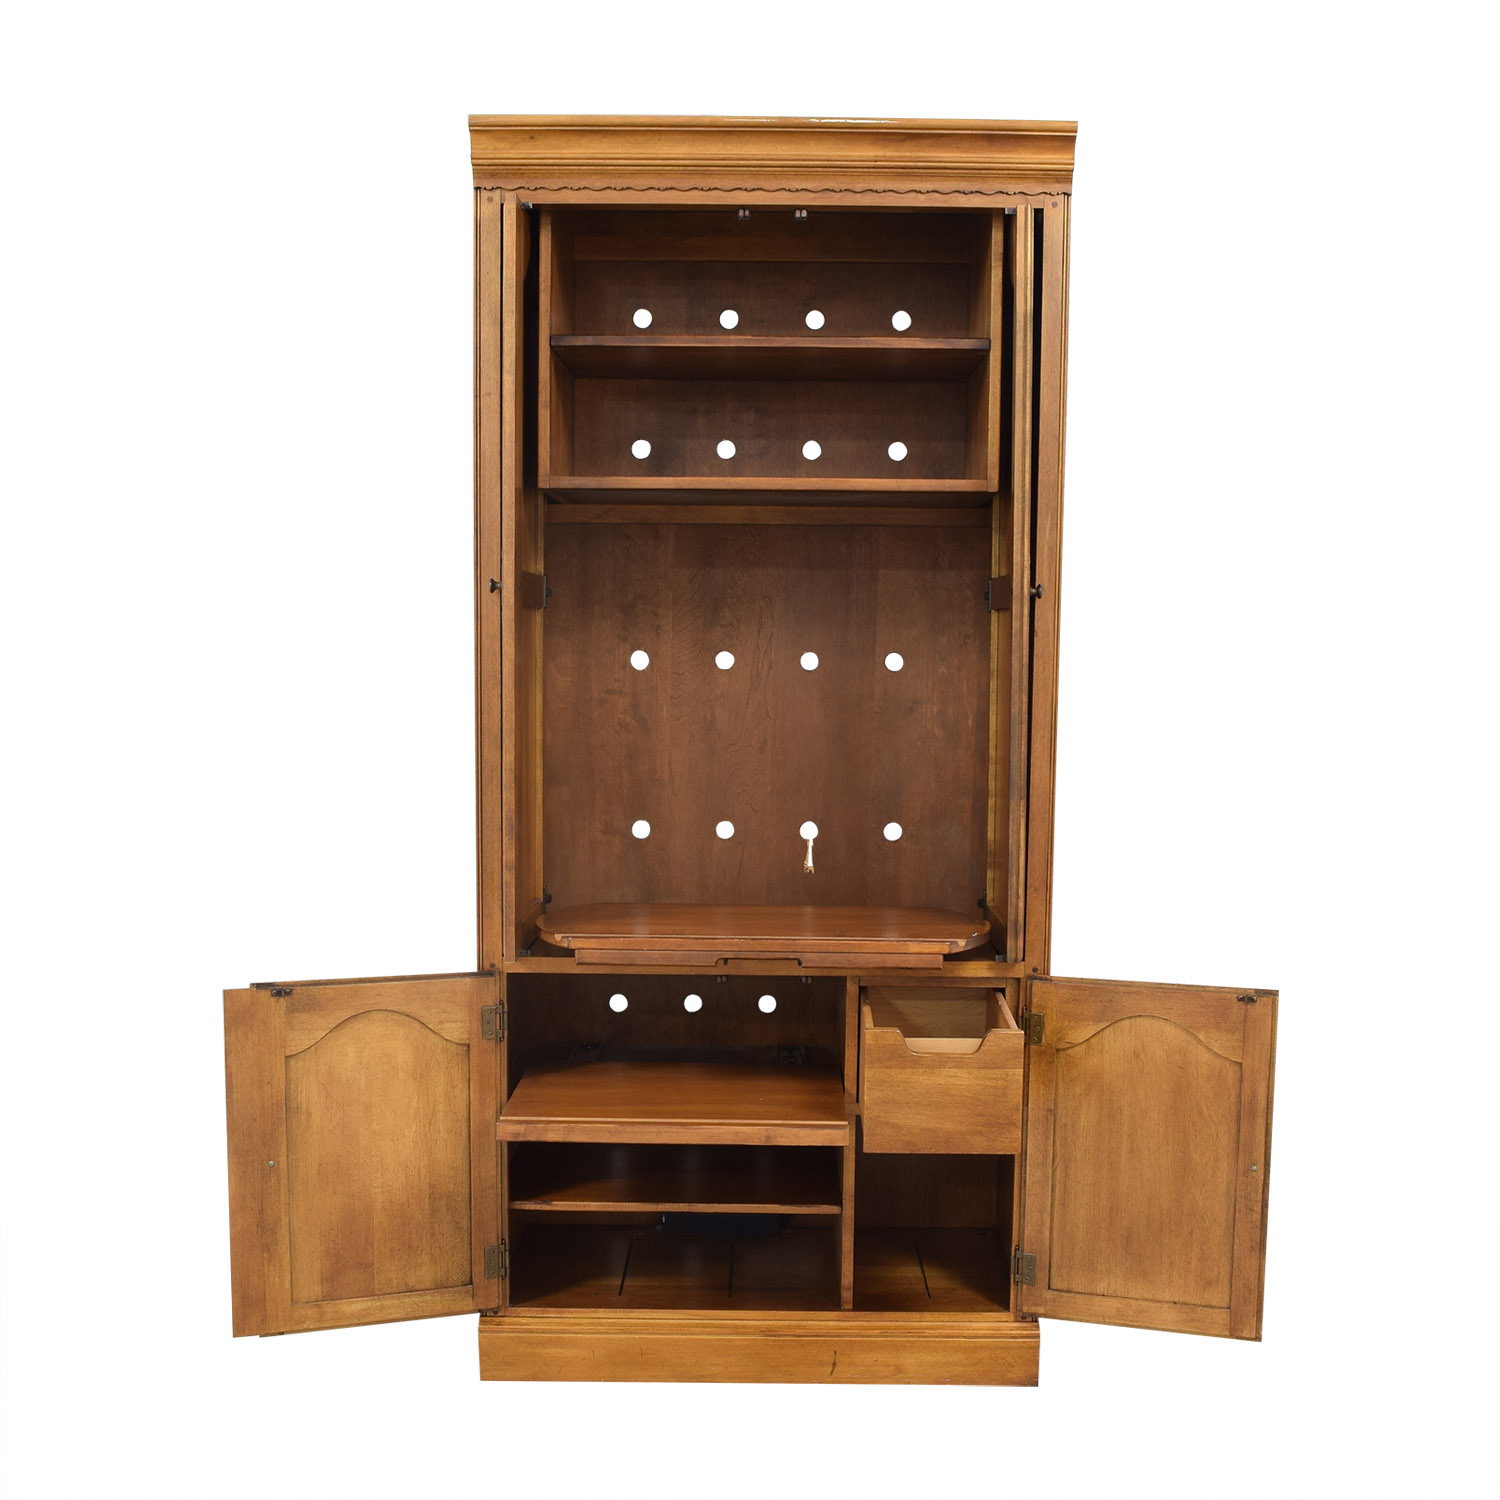 Ethan Allen Ethan Allen Entertainment Center on sale